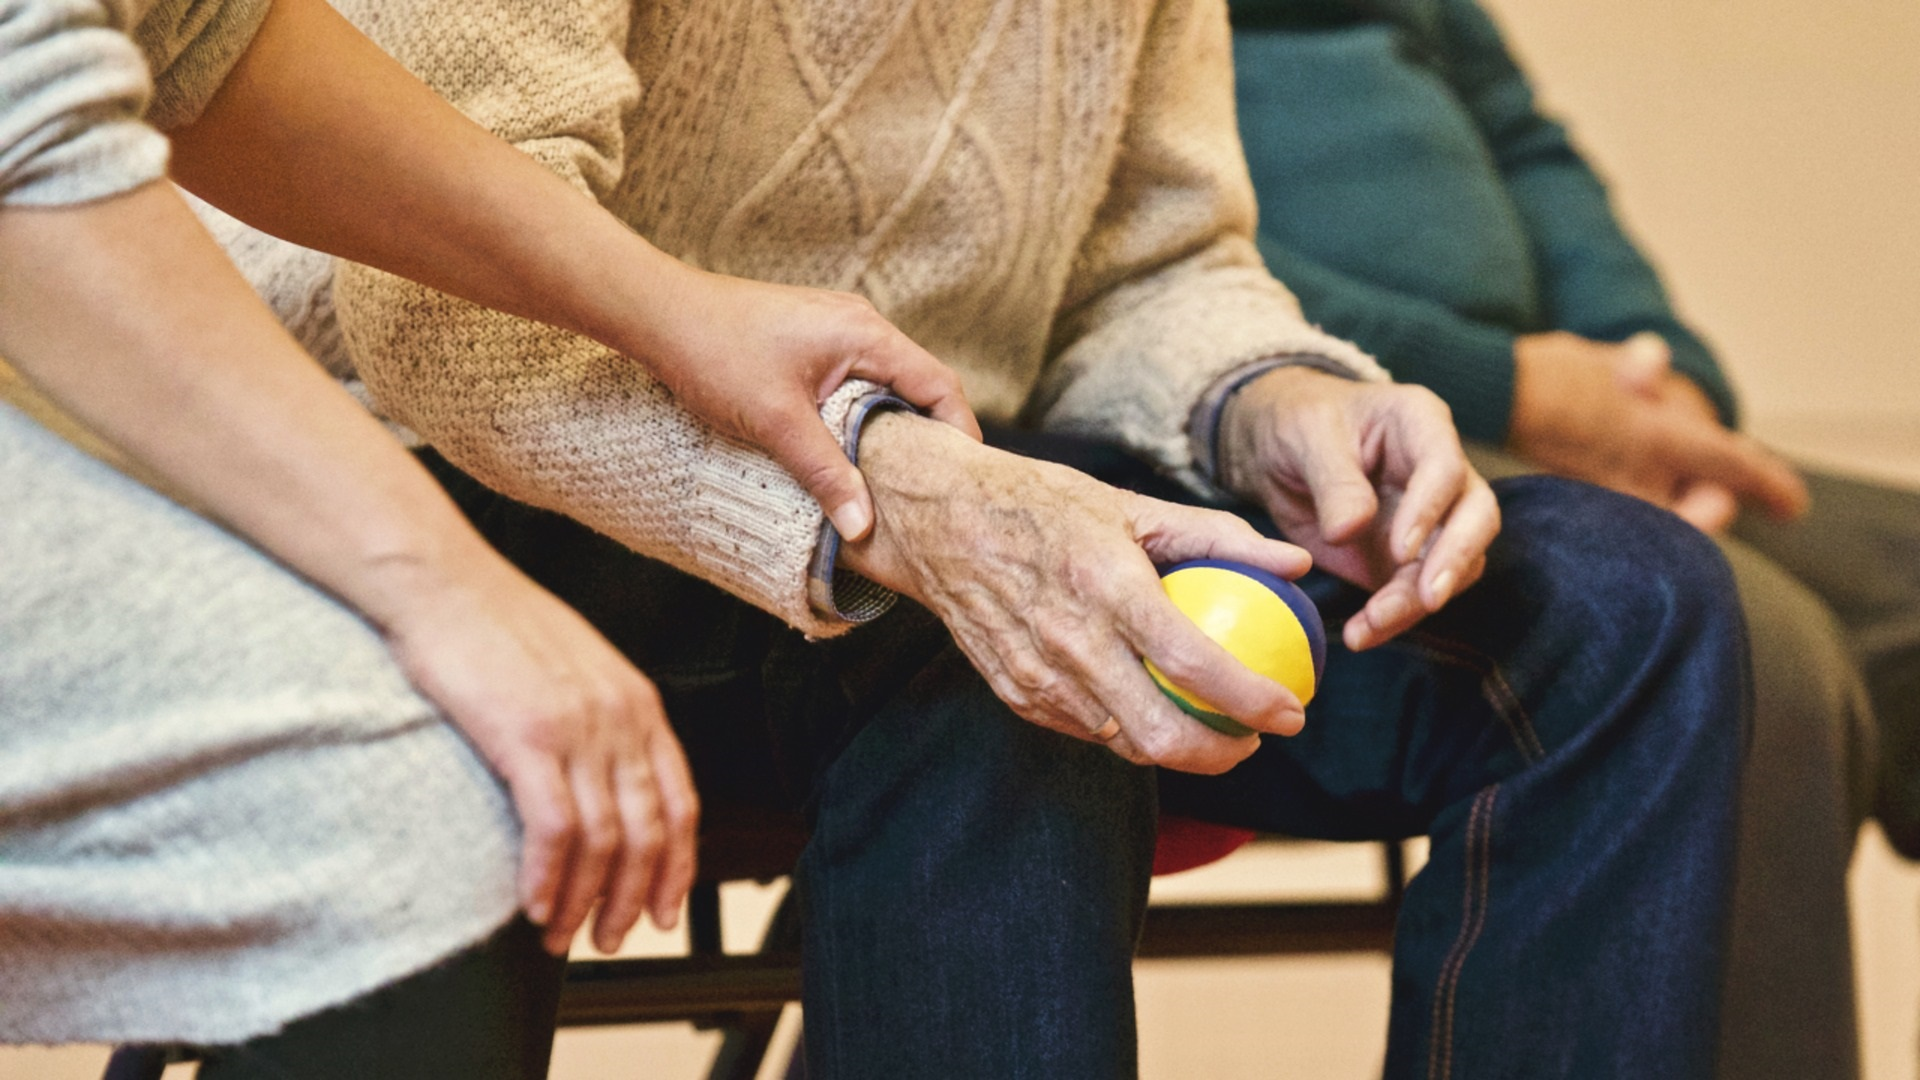 Consumer Perspectives: Stability, Wisdom, and Strength – Older Adults in Supported Housing